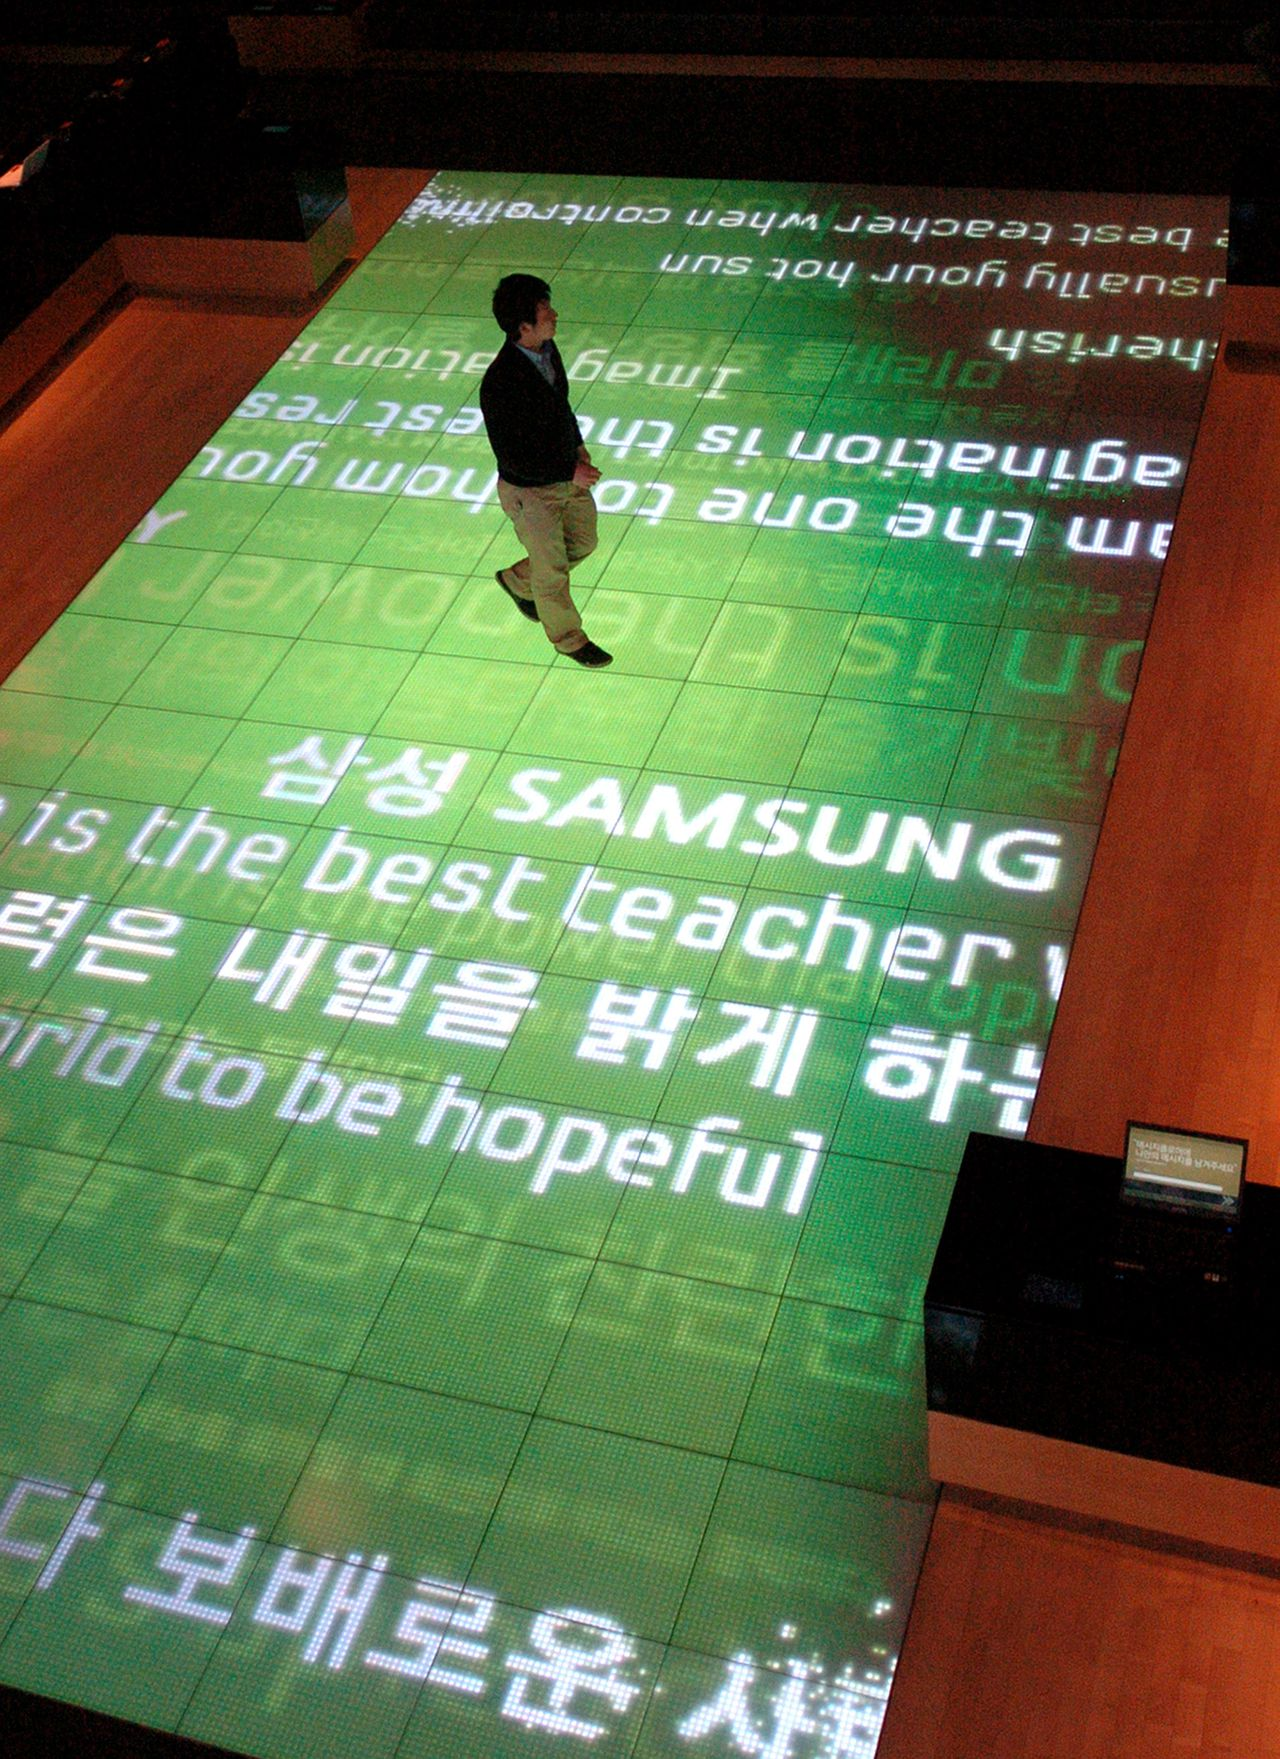 A man walks on large screens at a showroom of Samsung Electronics in Seoul on January 29, 2010. South Korean giant Samsung Electronics said its annual earnings rocketed last year to more than eight billion USD thanks to post-crisis demand for flat-screen TVs and higher chip prices. AFP PHOTO/PARK JI-HWAN